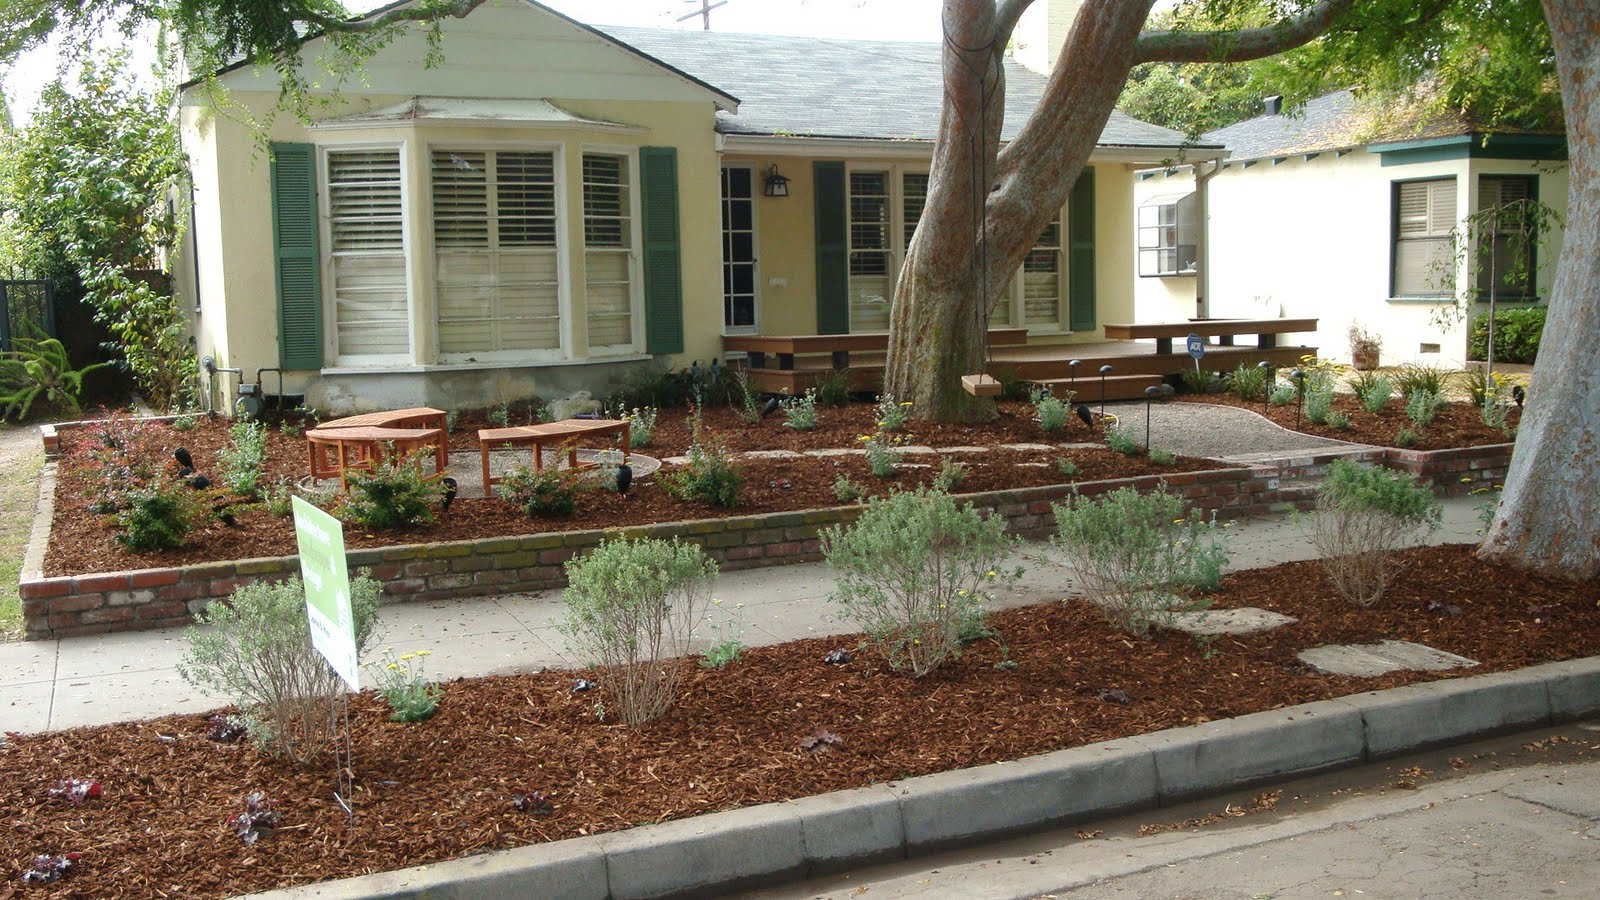 2303 21 Lawn Free Drought Tolerant Yards additionally Water Wise Landscape Designs Front Yard furthermore Ideas For Front Yard Mulch besides  in addition 11 Inspirational Rock Gardens To Get You Planning Your Garden. on drought tolerant front yard makeover